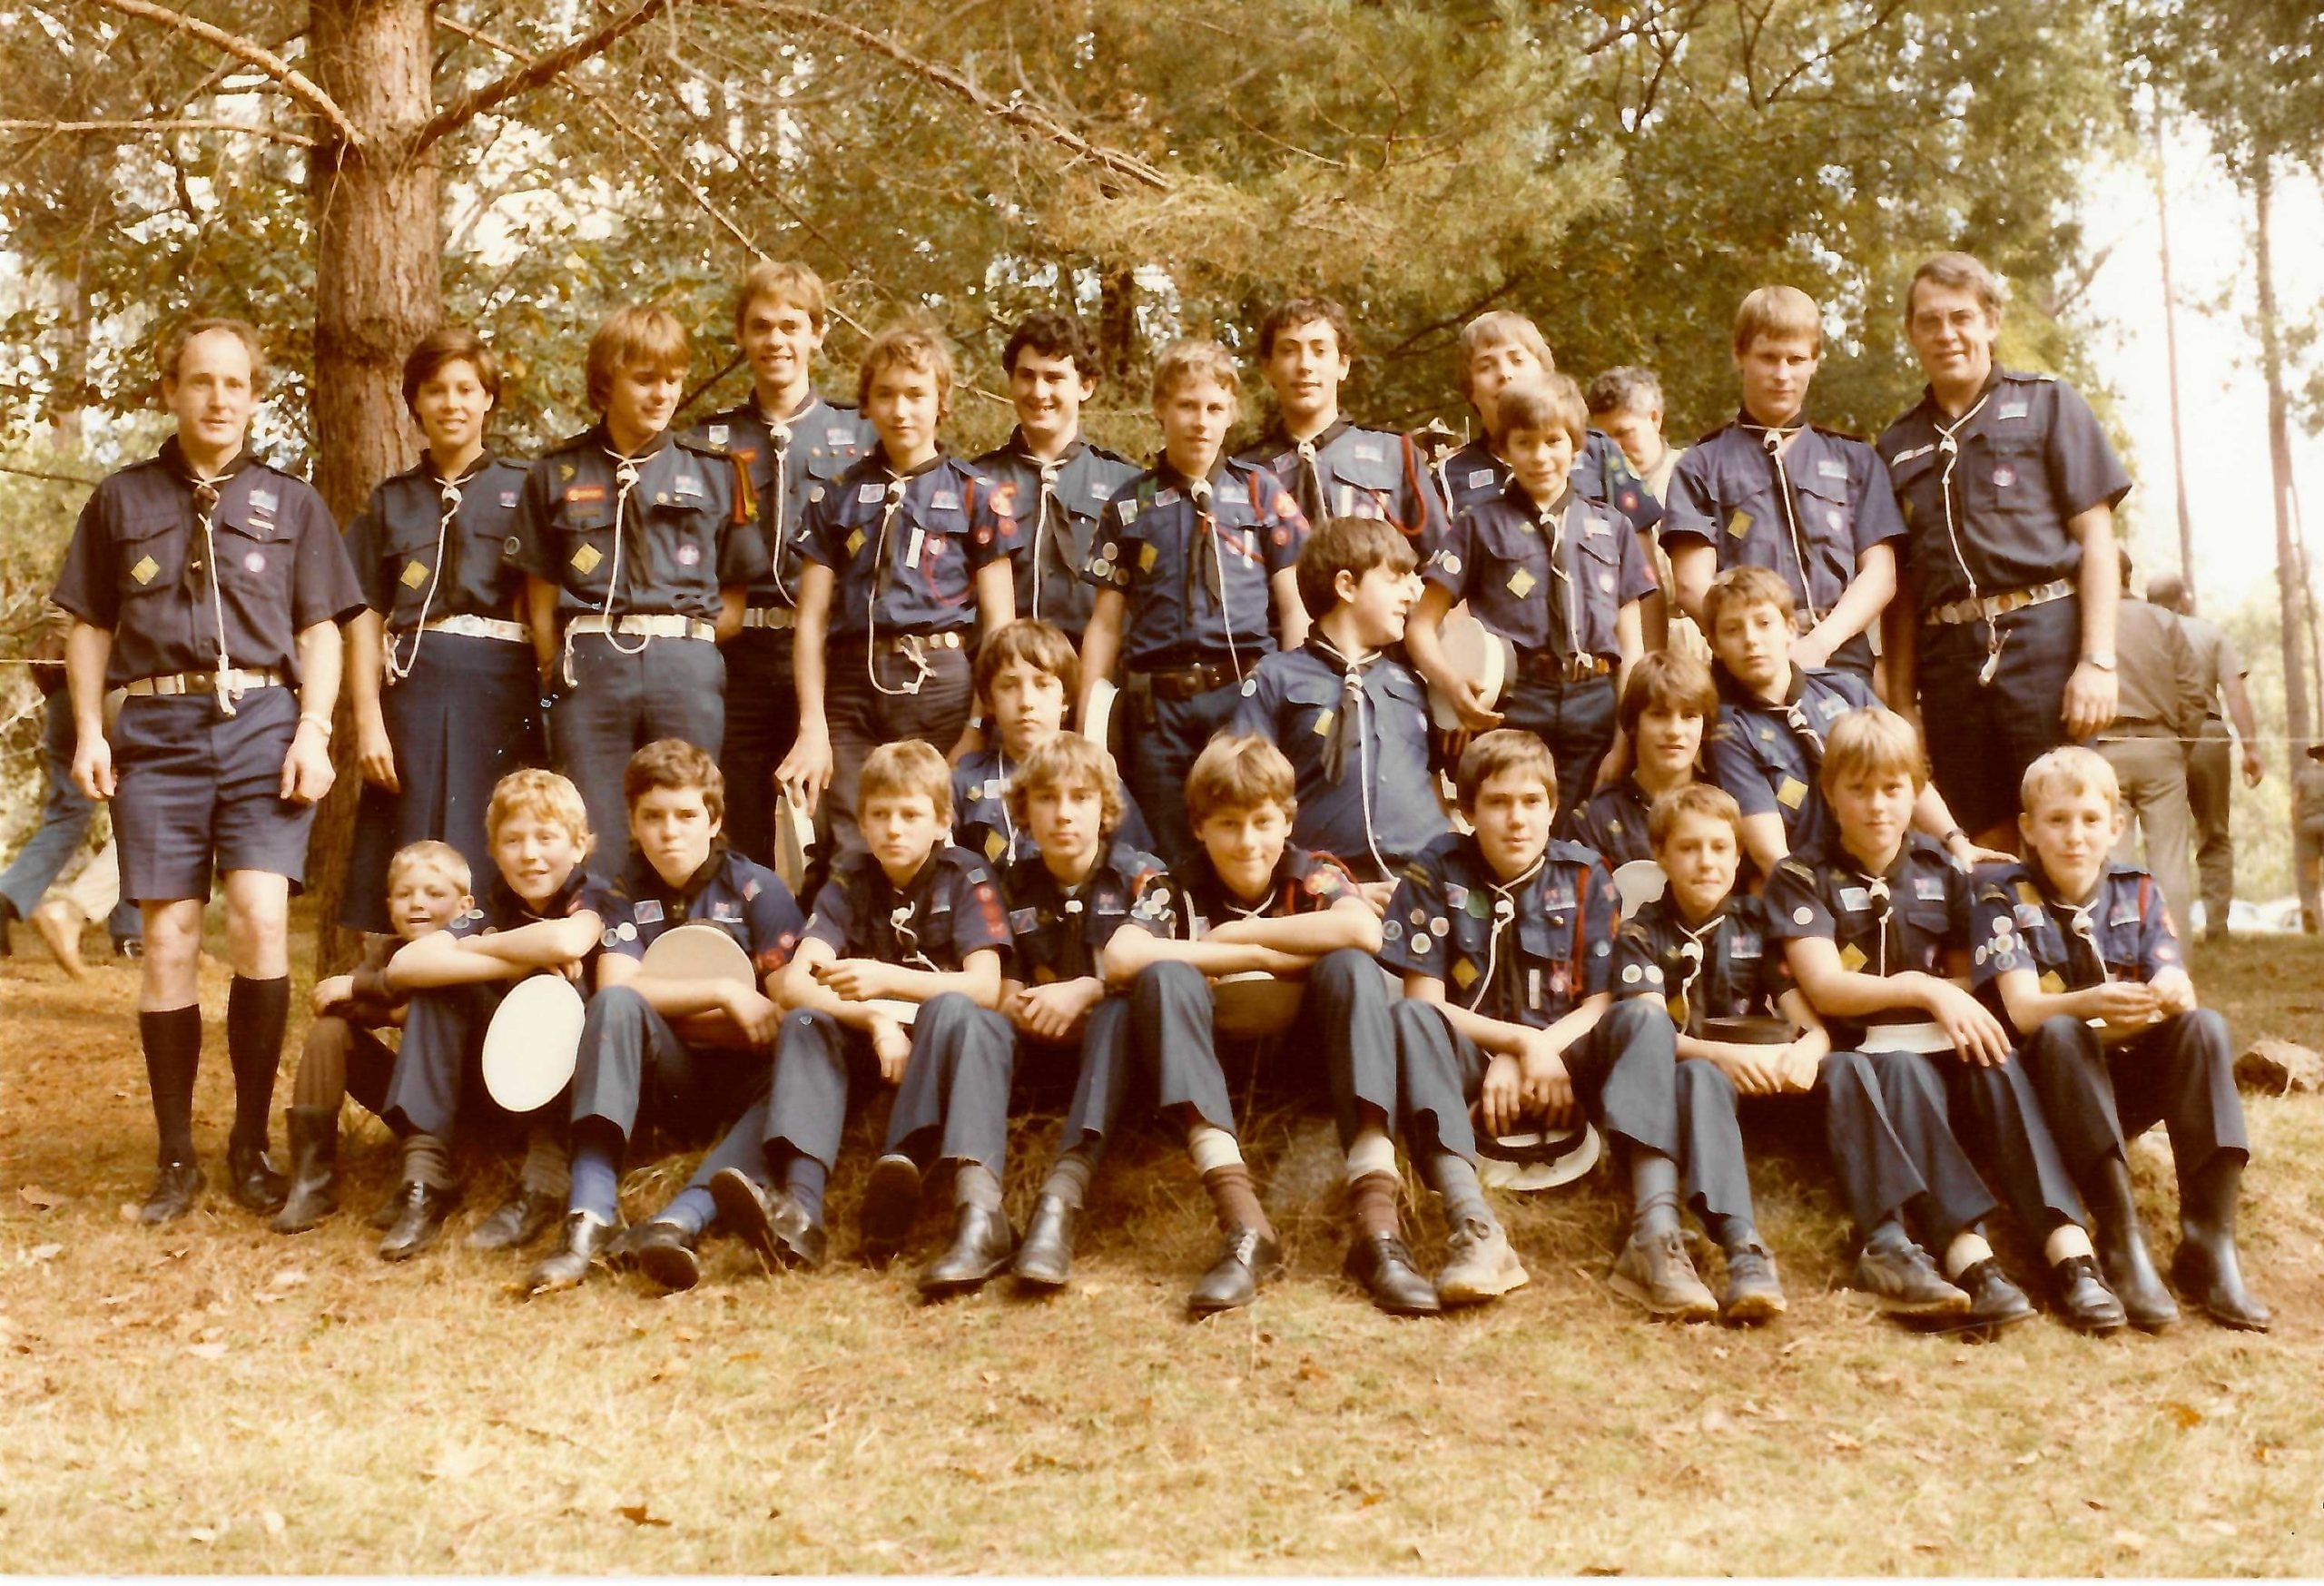 1st Ivanhoe participants in the Stradbroke Cup Camping Competition at Gilwell Park, Gembrook, April 1984.  Bruce stands on the far left